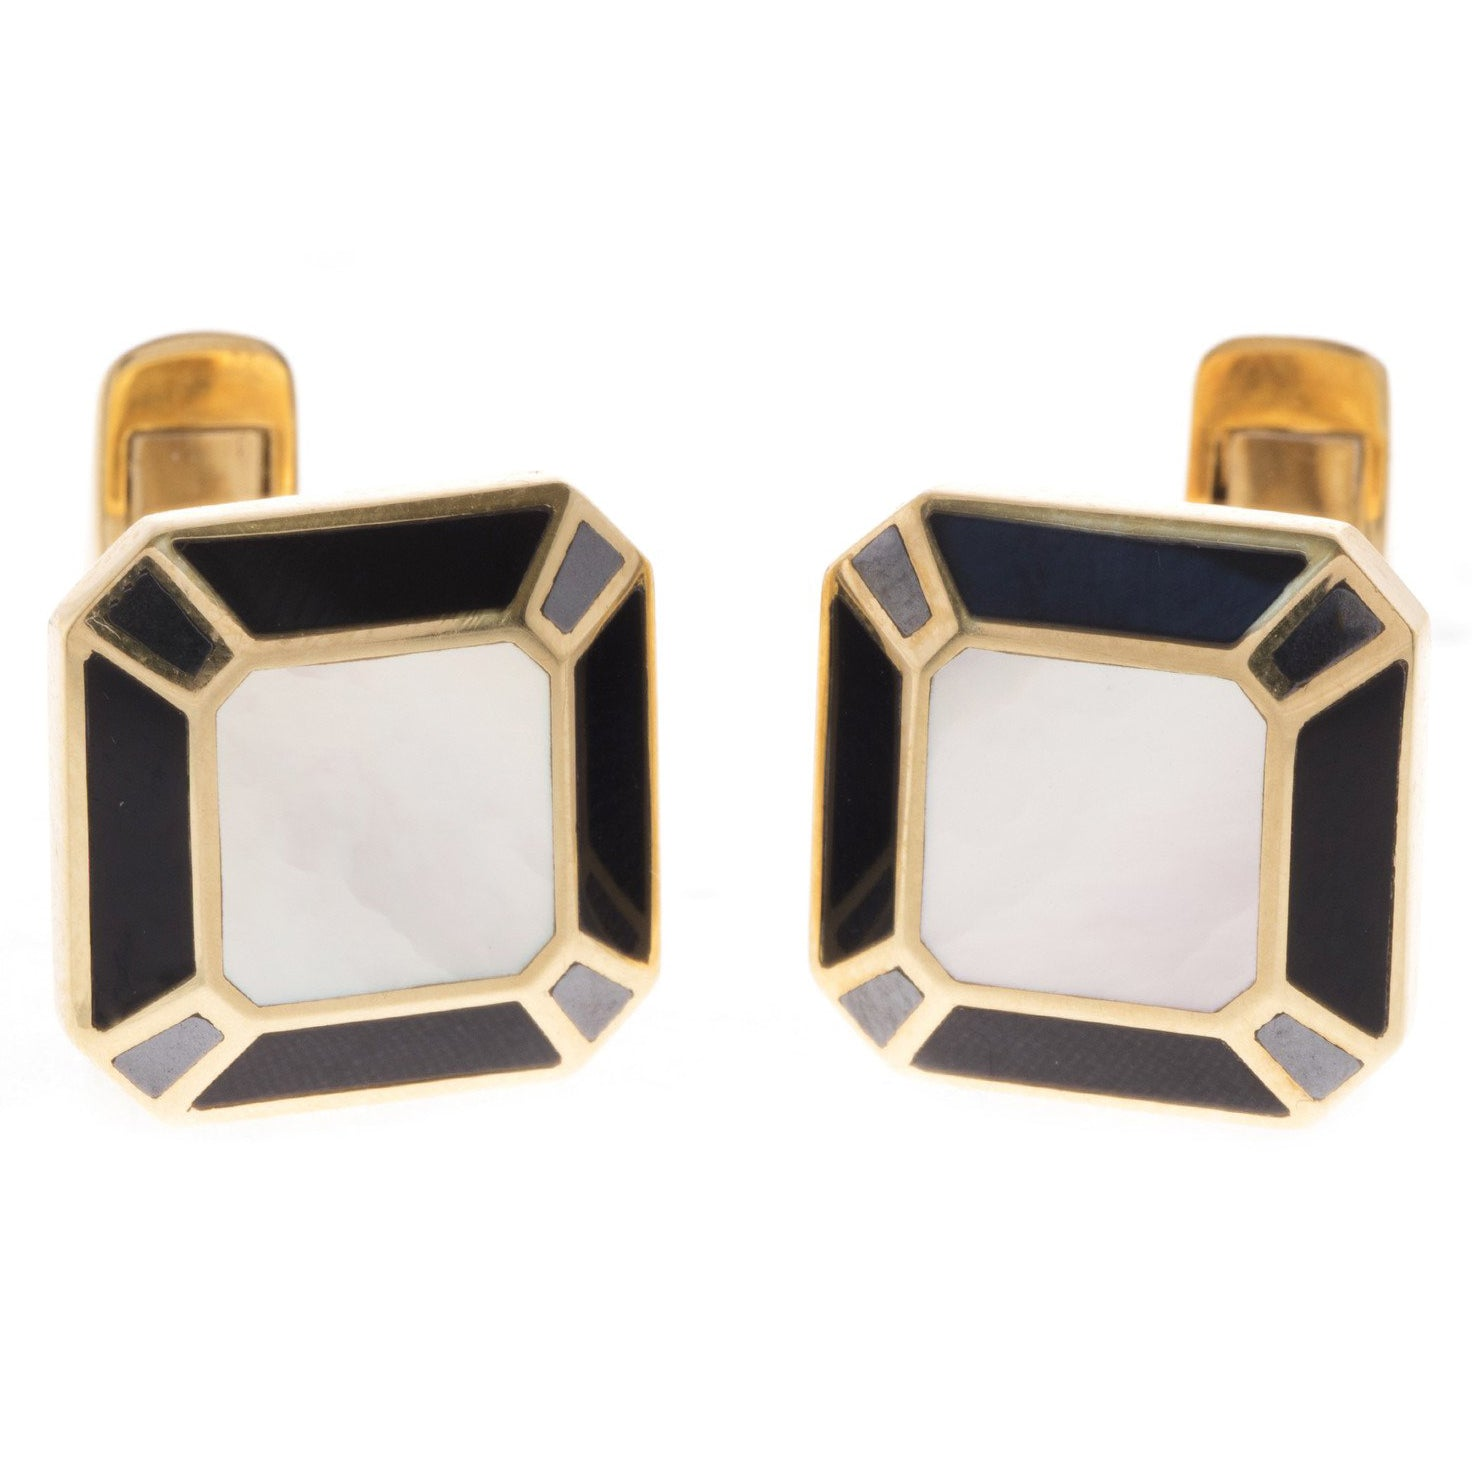 18ct Yellow Gold Men's Cufflinks, Minar Jewellers - 6